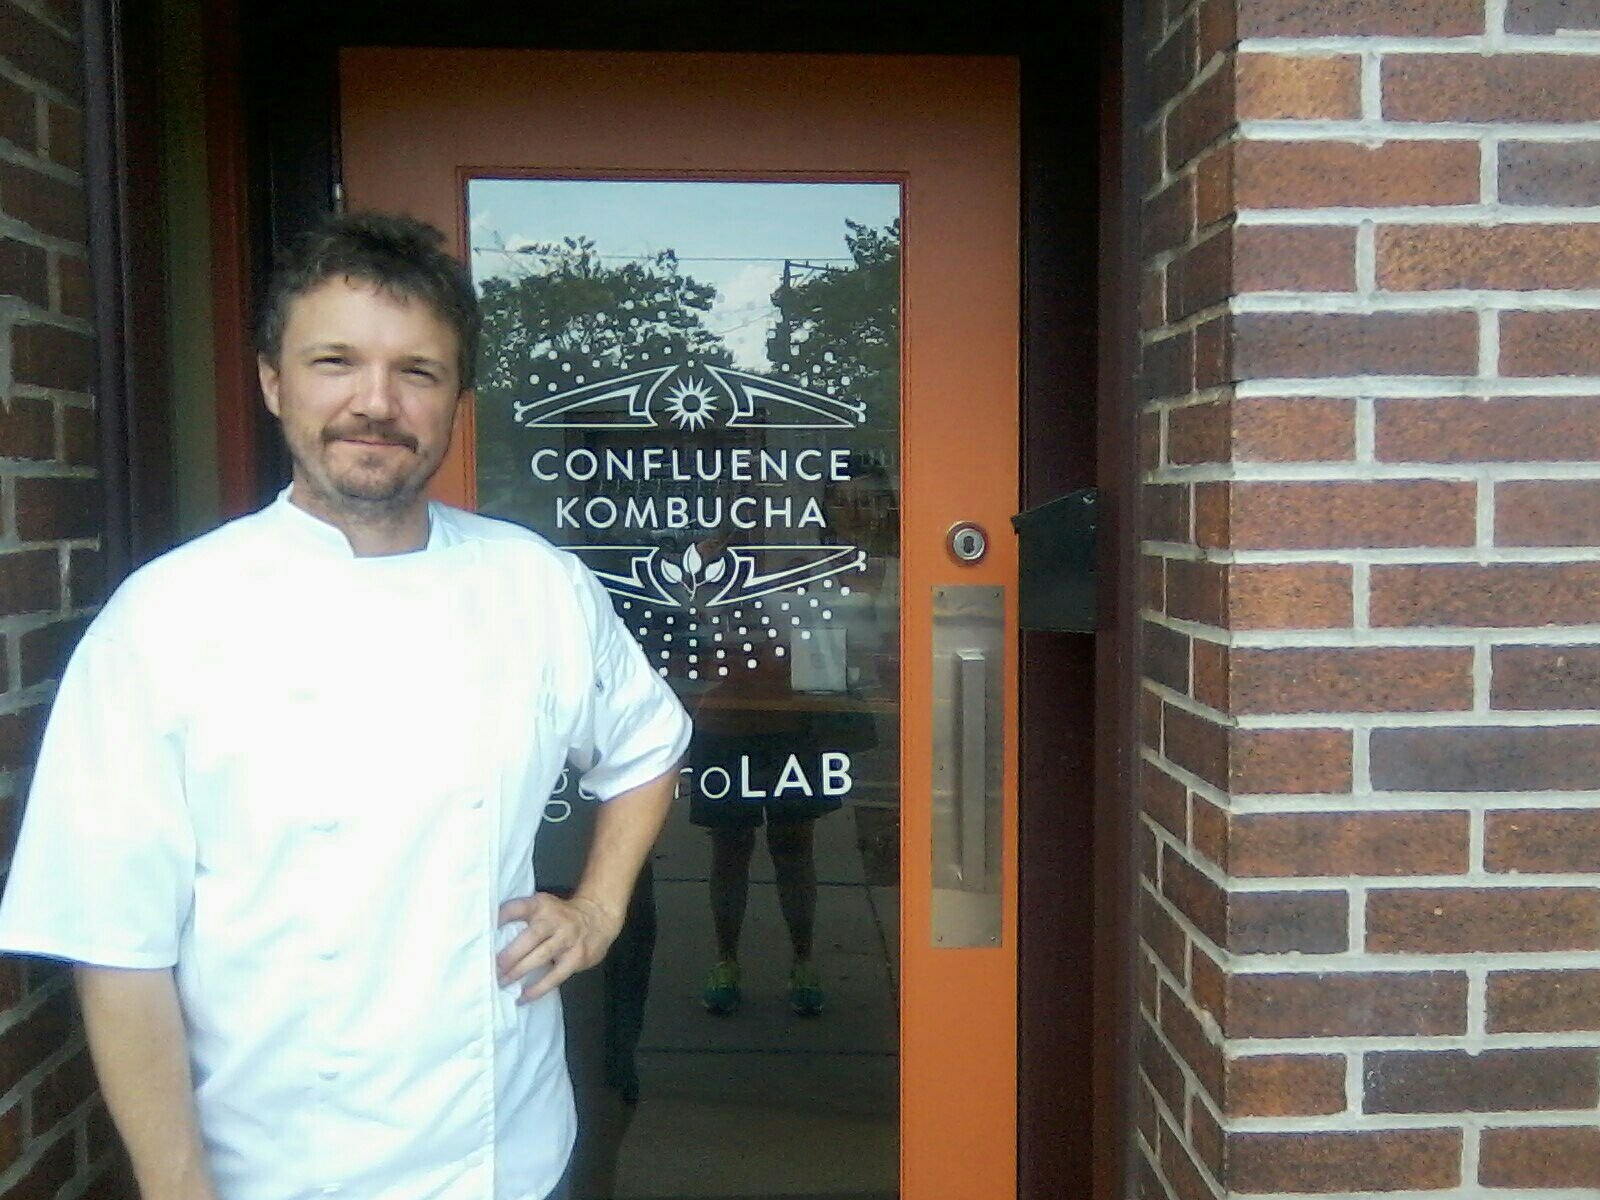 William Pauley, chef and owner of Confluence Kombucha, is healing after a near death accident. (Credit: Family photo)